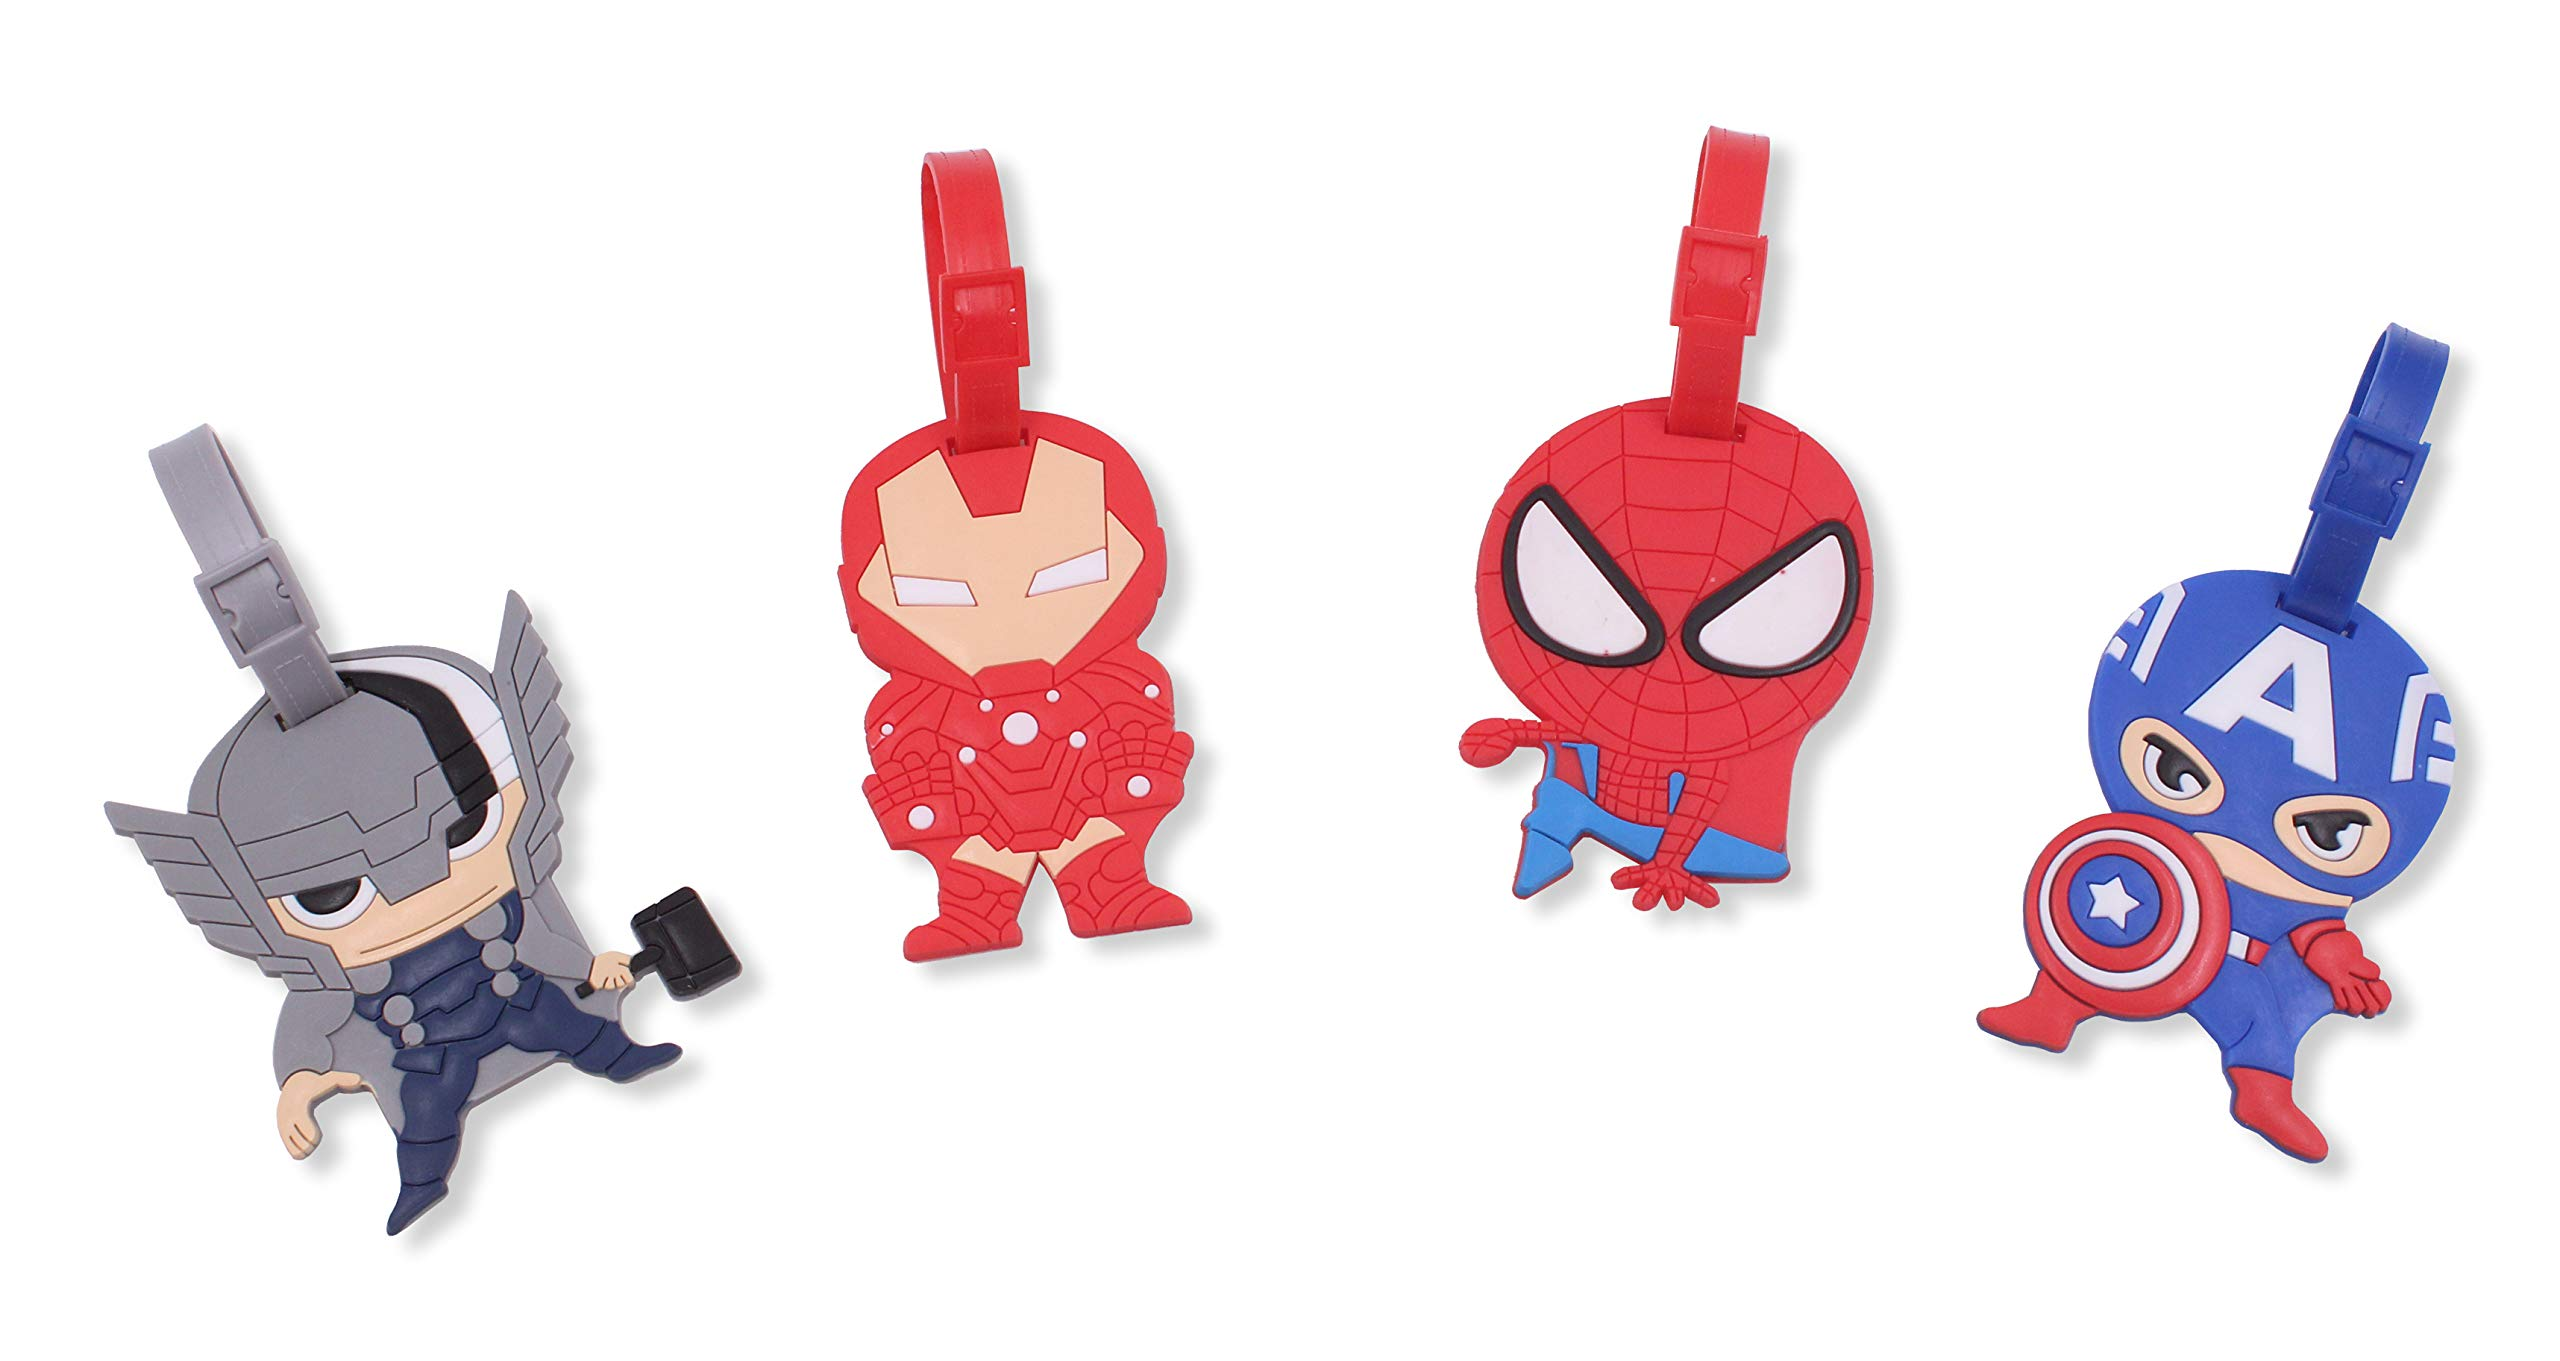 Finex Set of 4 - Avengers Captain America Iron Man Spiderman Luggage ID Tag Bags with Adjustable Strap Superhero by FINEX